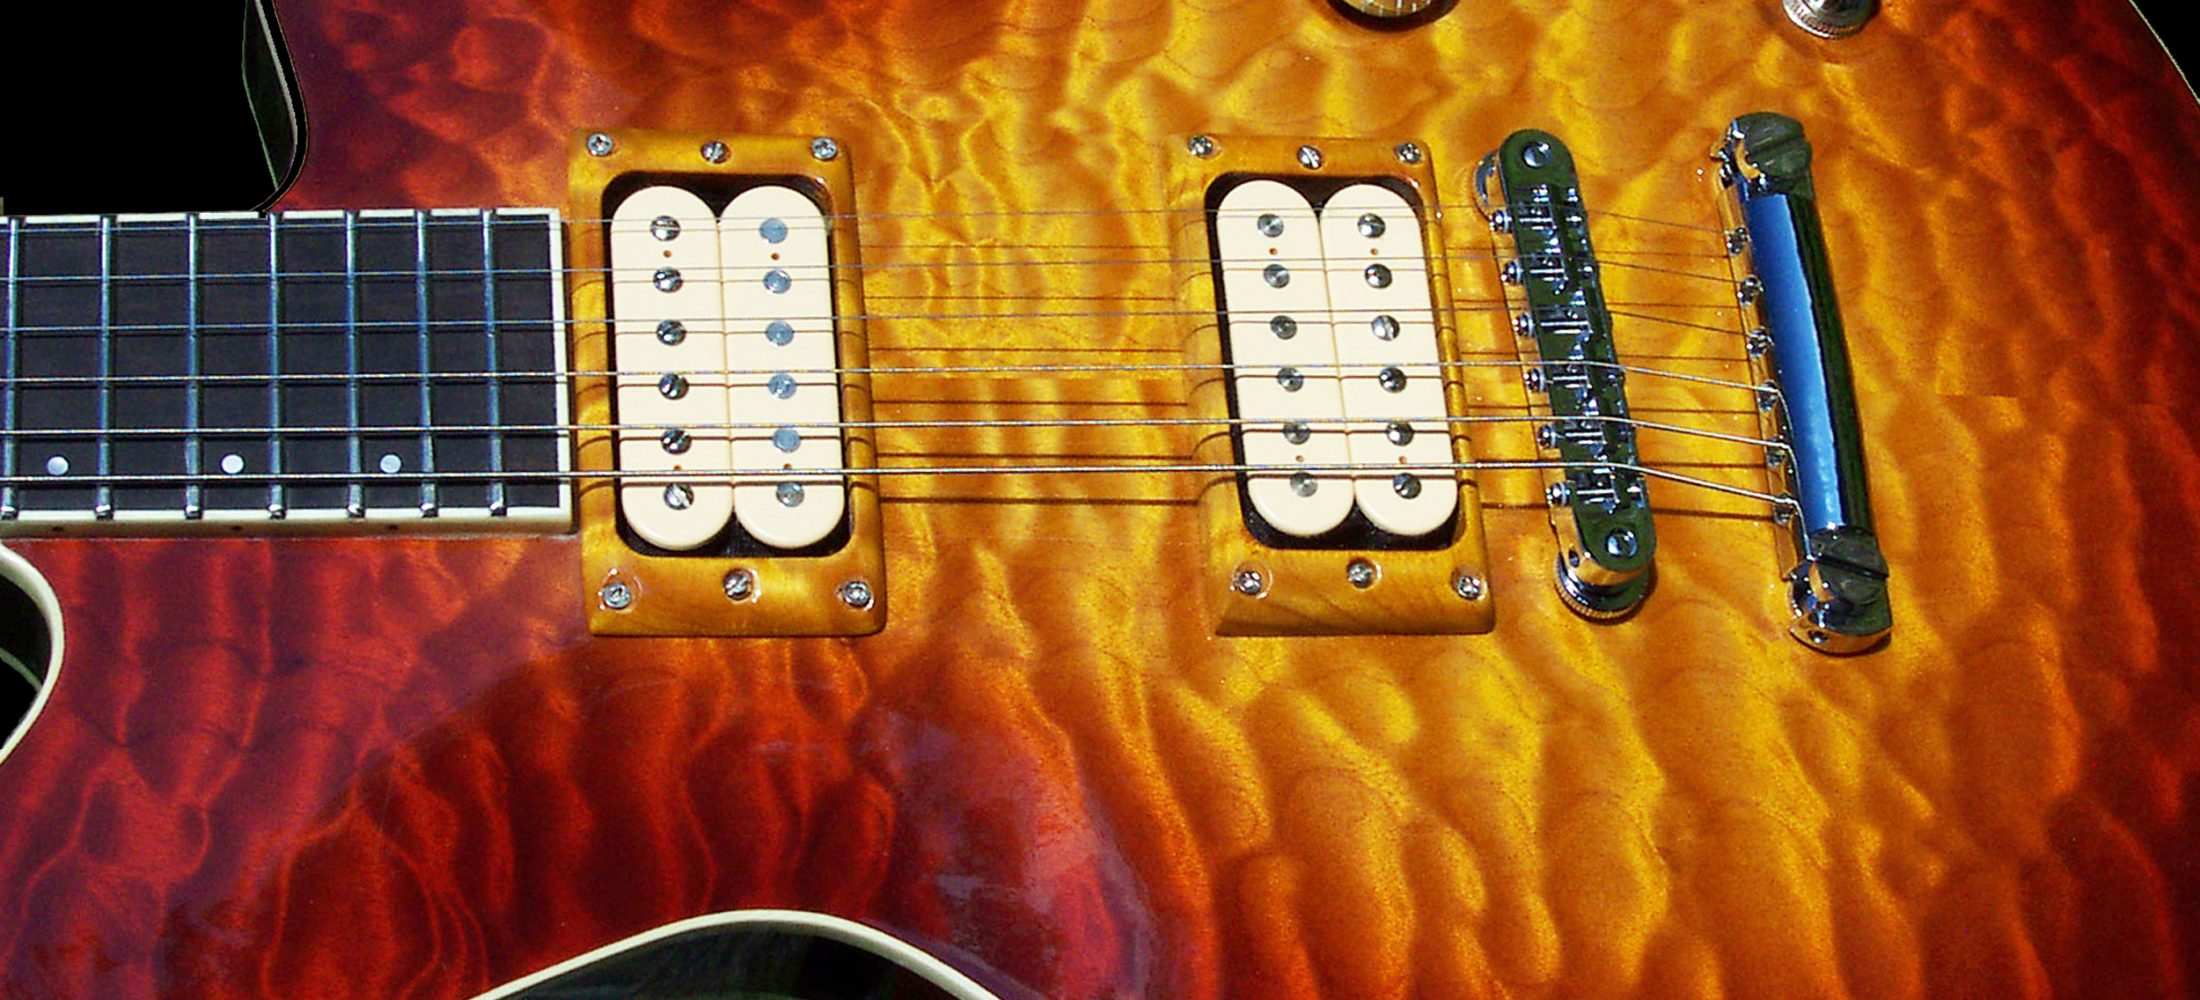 Custom guitar sunburst finish